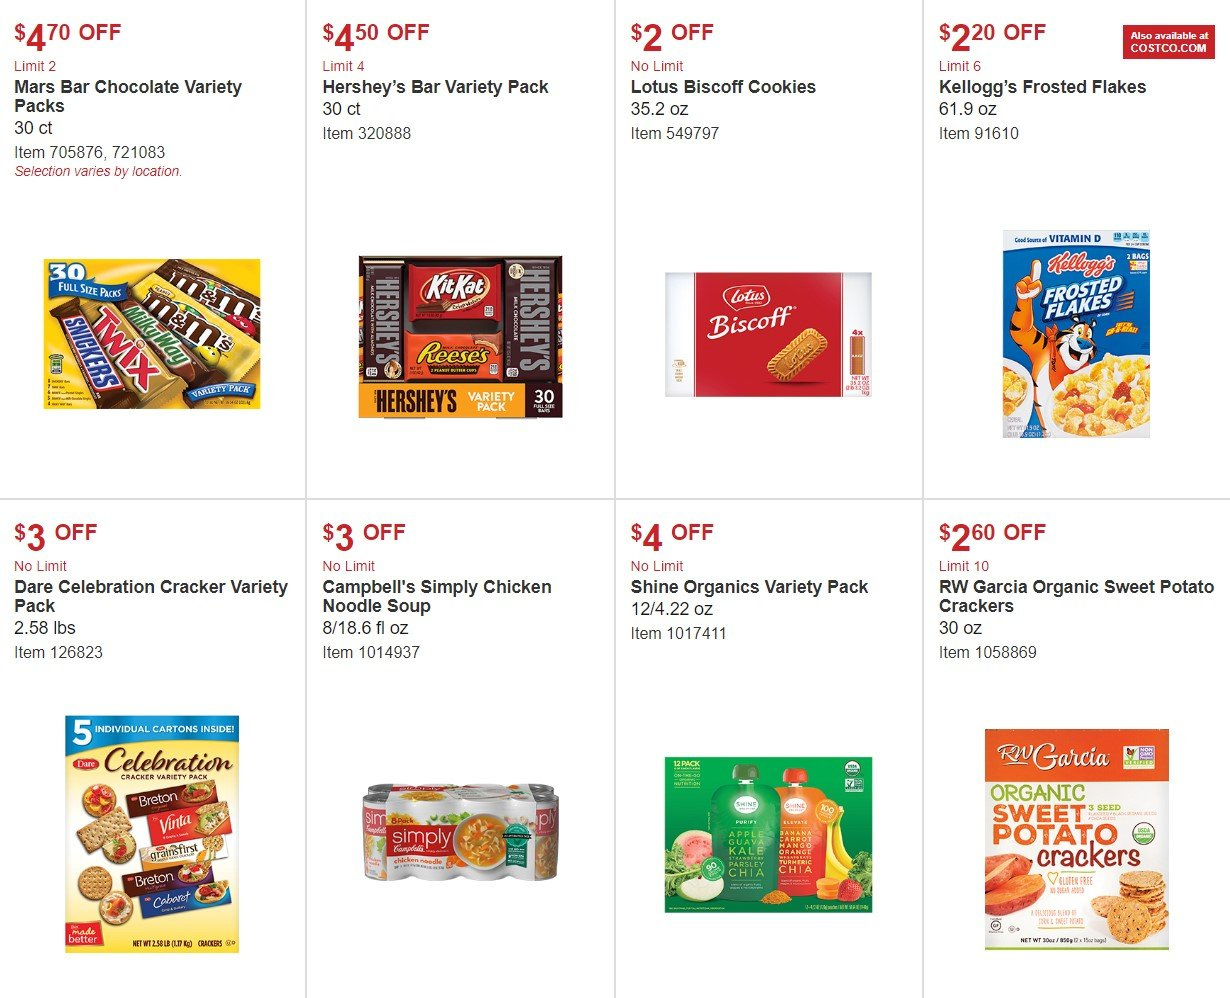 Costco Flyer - 10.03.2018 - 10.28.2018 - Sales products - bag, campbell's, cookies, crackers, sweet potatoes, kale, parsley, noodle, organic, chocolate. Page 9.